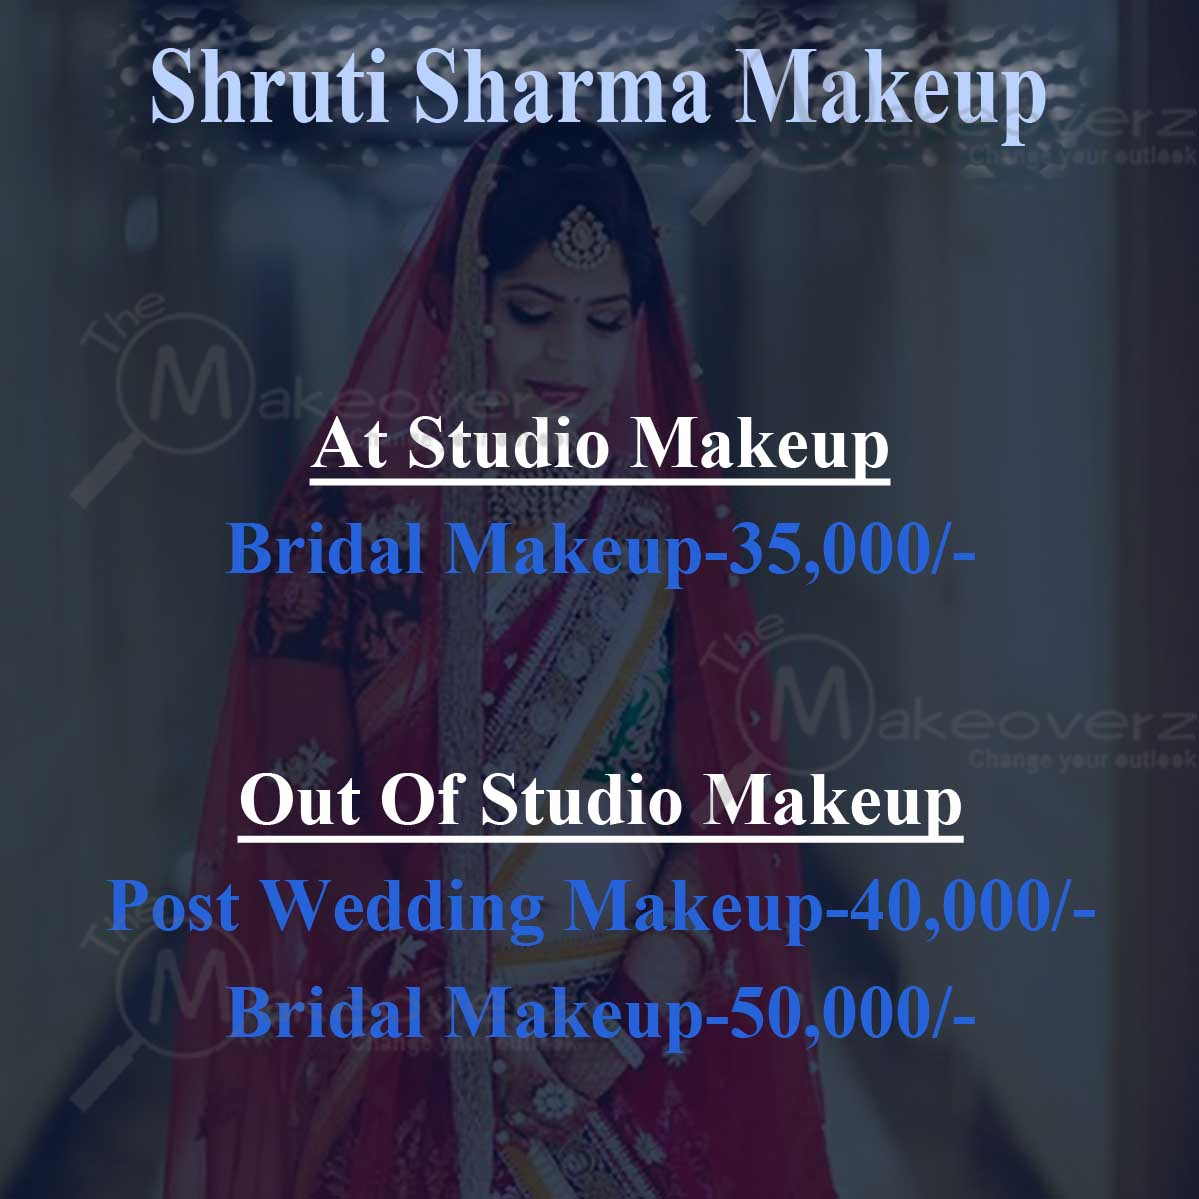 Shruti Sharma Makeup - Chattarpur